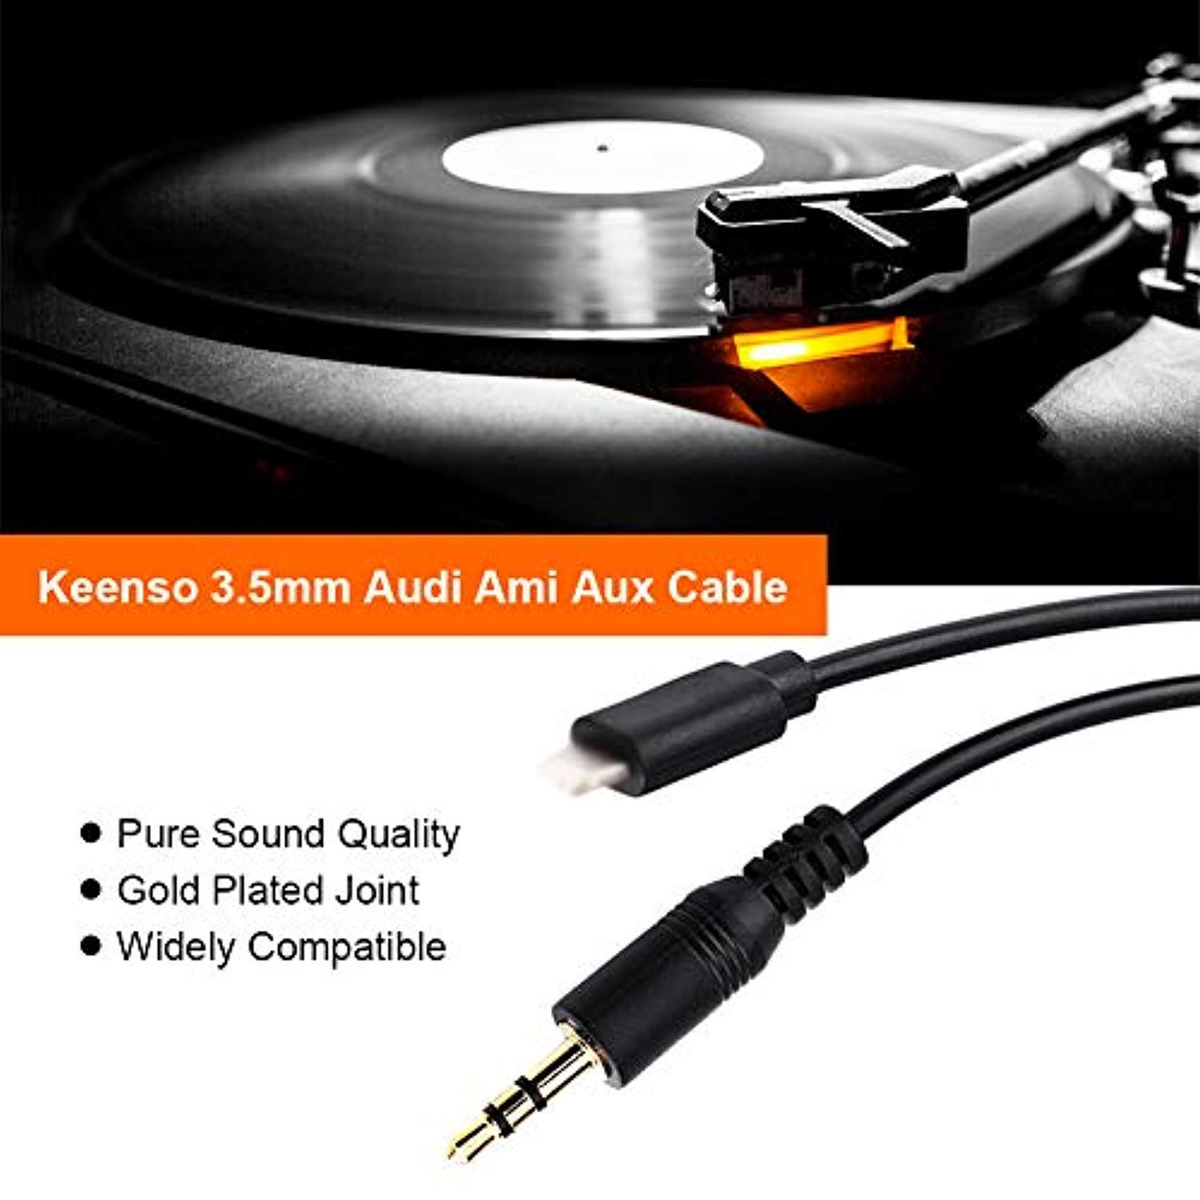 Volkswagen Keenso 3.5mm Music Interface AMI MDI MMI AUX Cable Adapter Auxiliary Audio Adapter MP3 Cord for Audi A6L//Q5//Q7//A8//S5//A5//A4L//A3 iPod iPhone 5//6